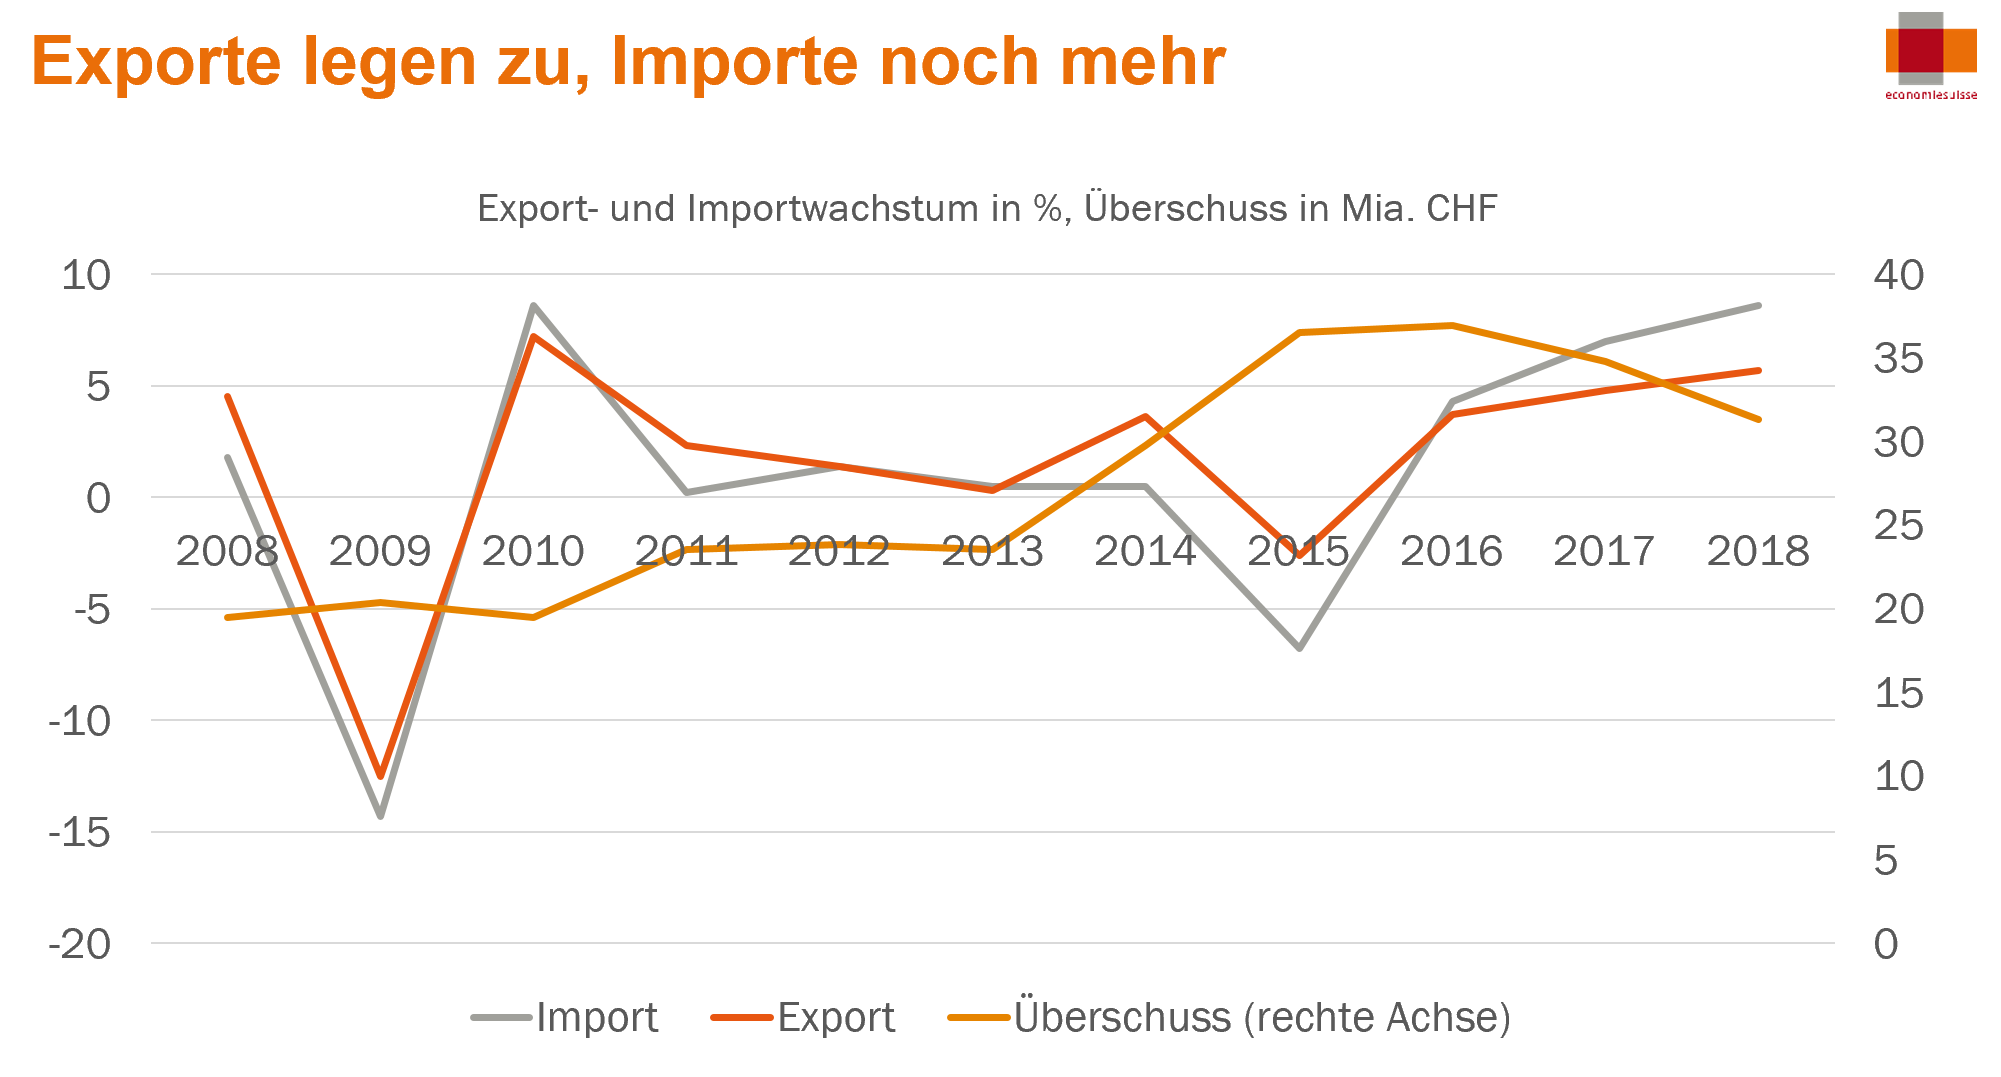 Export legen zu